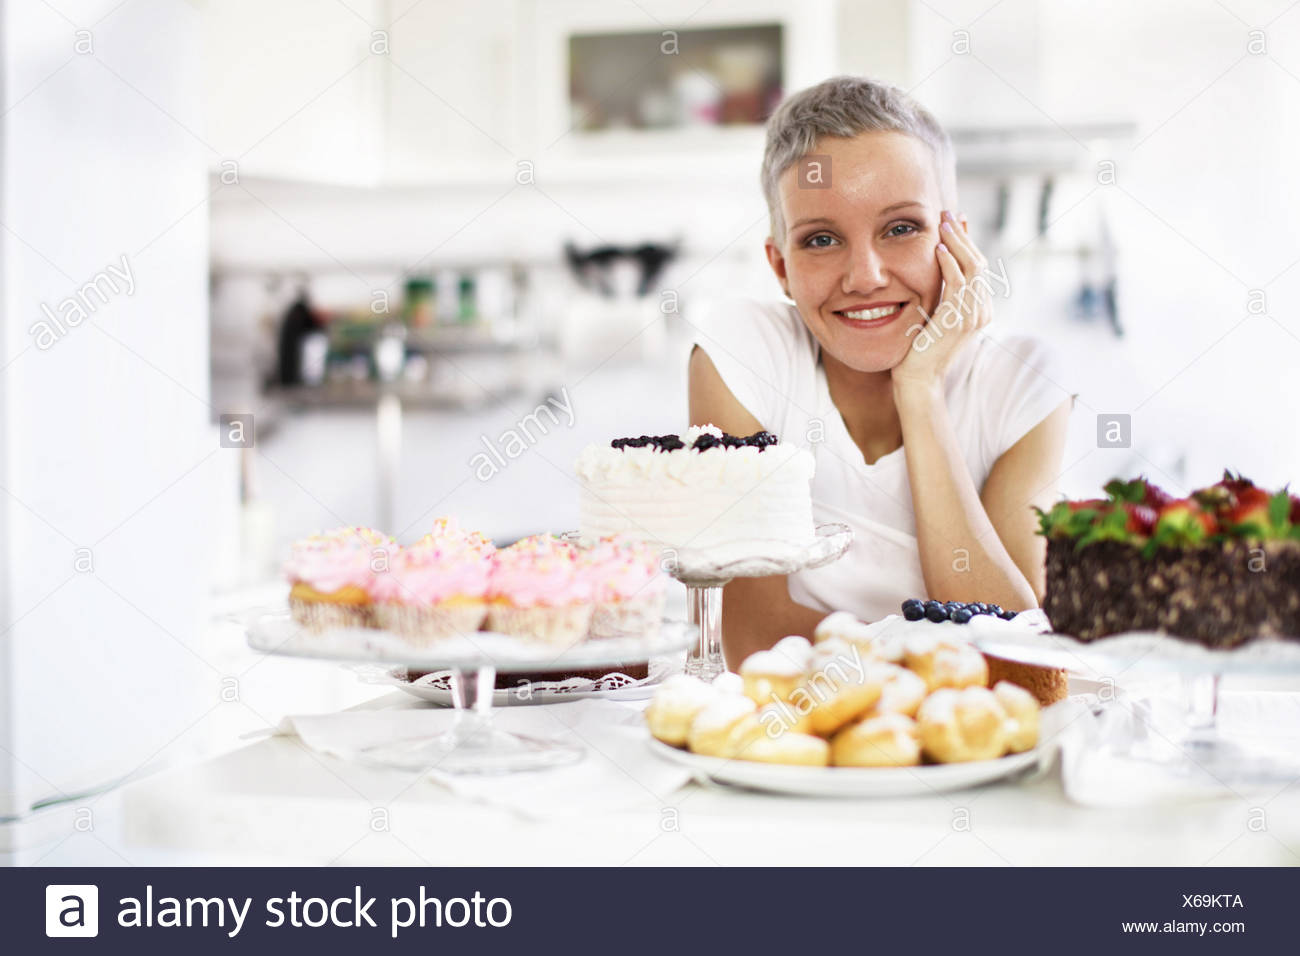 Portrait of woman with selection of hand made cakes - Stock Image